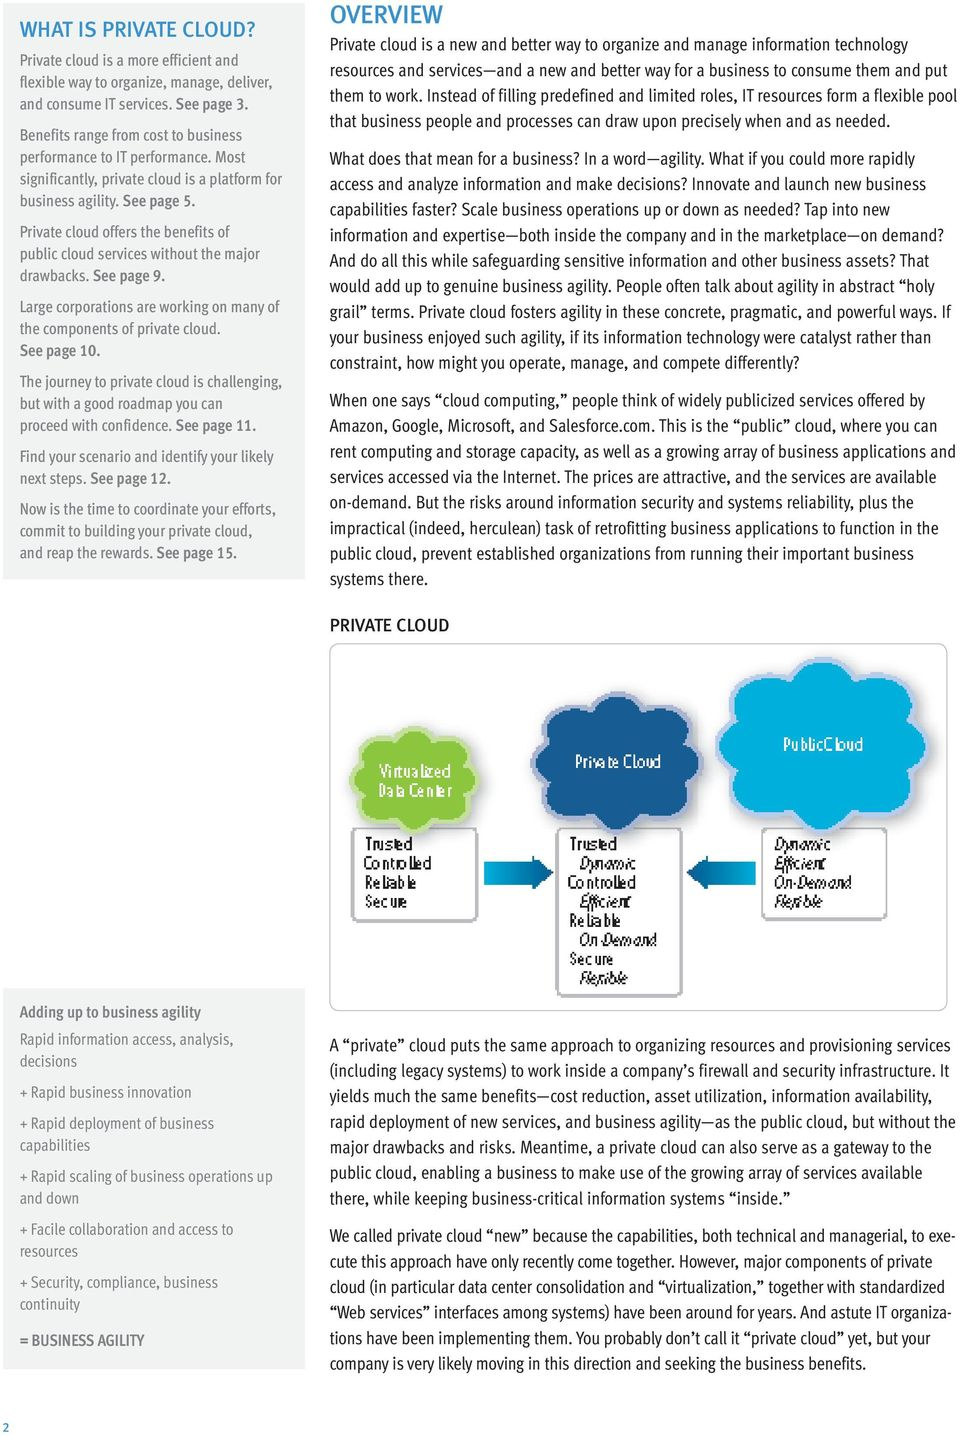 Private cloud offers the benefits of public cloud services without the major drawbacks. See page 9. Large corporations are working on many of the components of private cloud. See page 10.